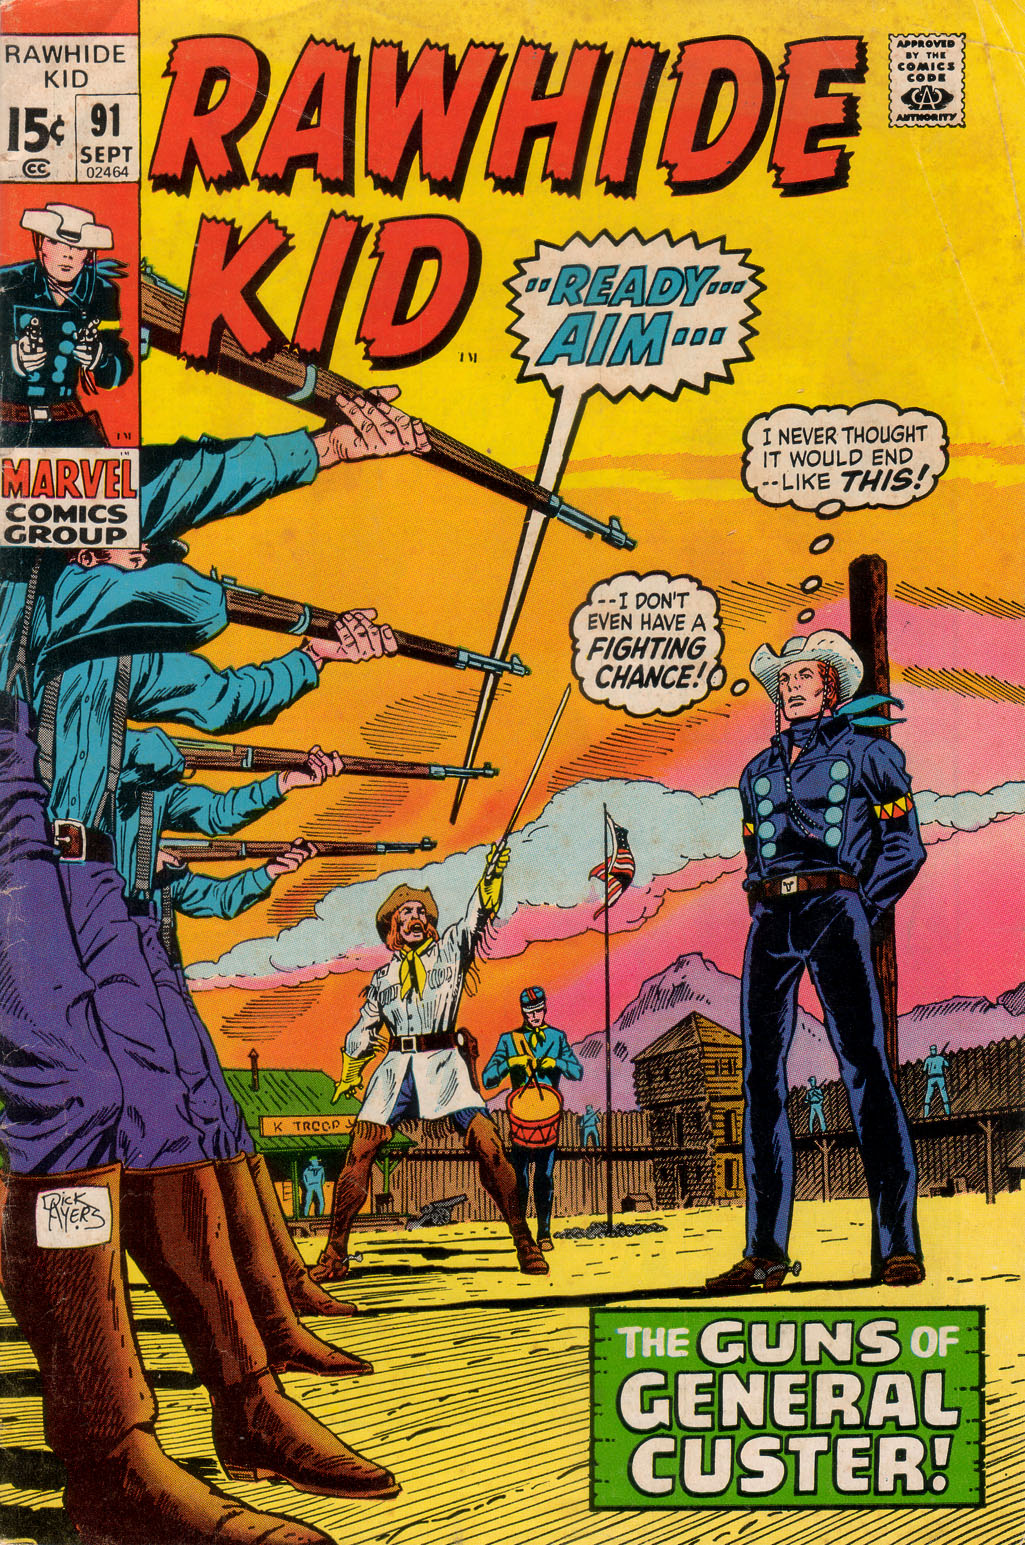 The Rawhide Kid (1955) issue 91 - Page 1